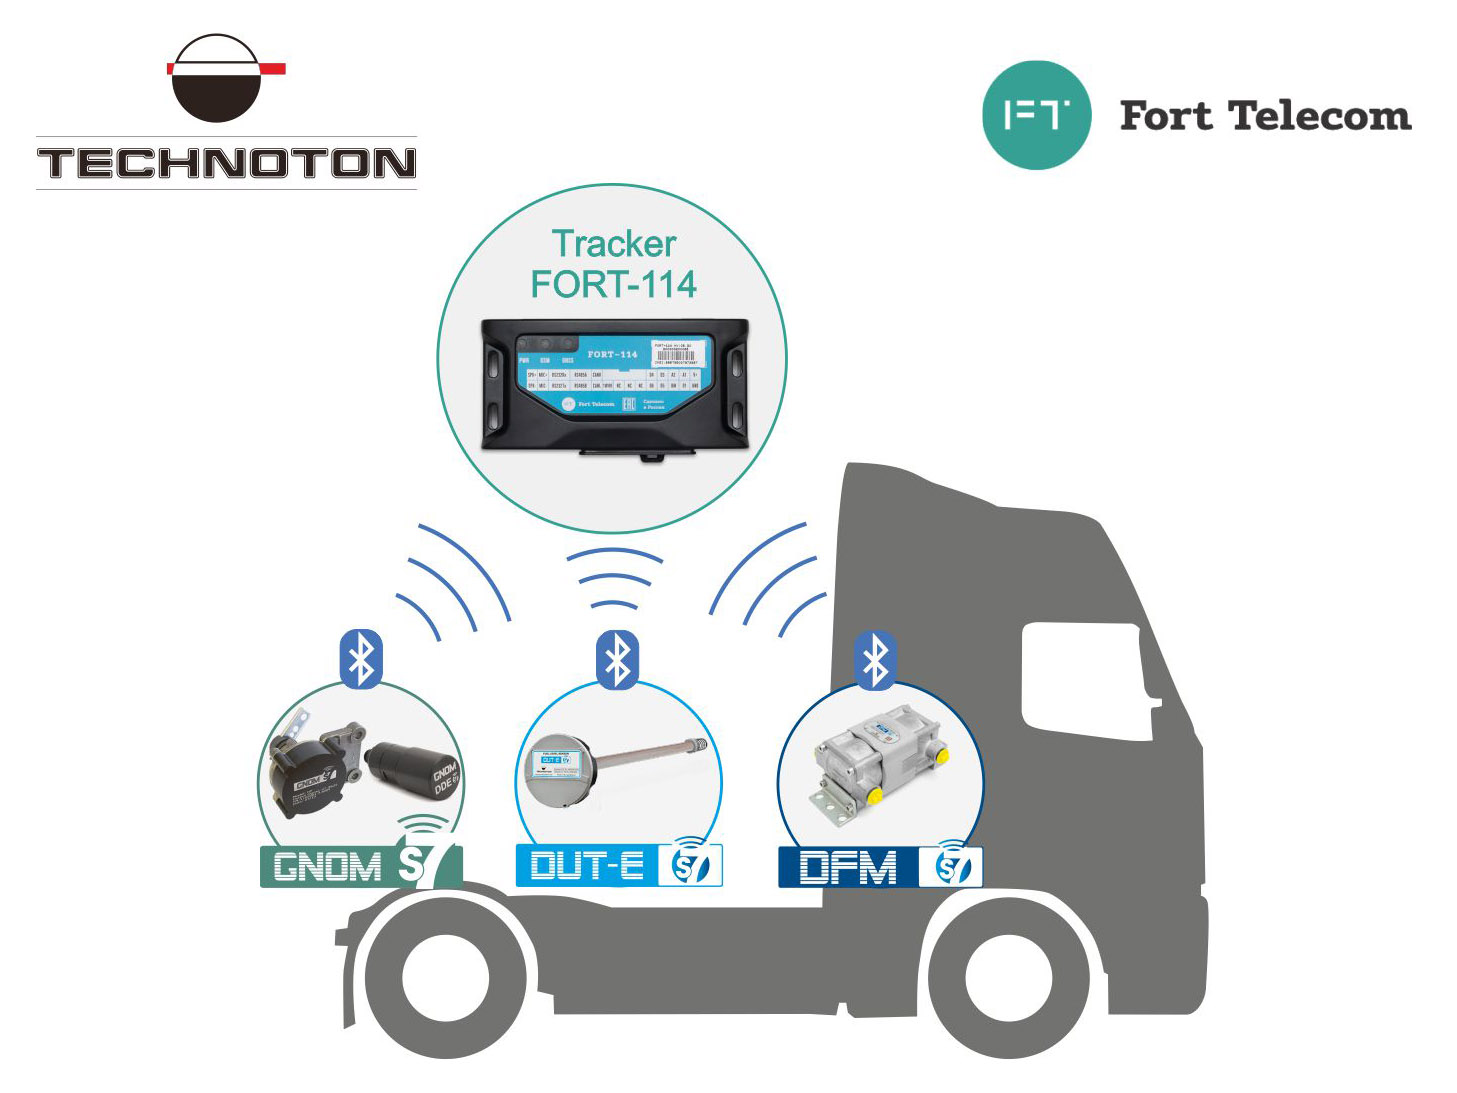 Truck monitoring using Technoton BLE sensors and Fort Telecom tracking device